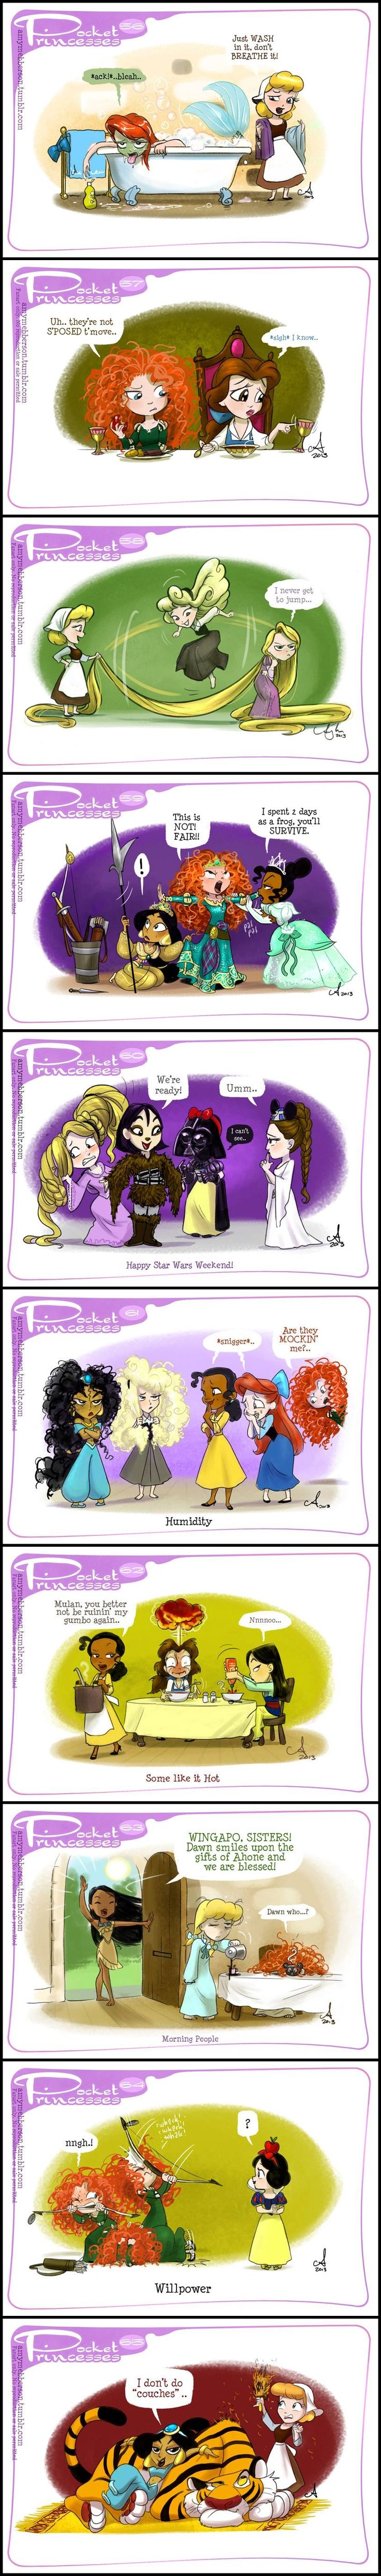 Pocket Princesses (Part 6) by Amy Mebberson - I am in love with the Pocket Princesses! I always laugh at their antics and would love to read more!